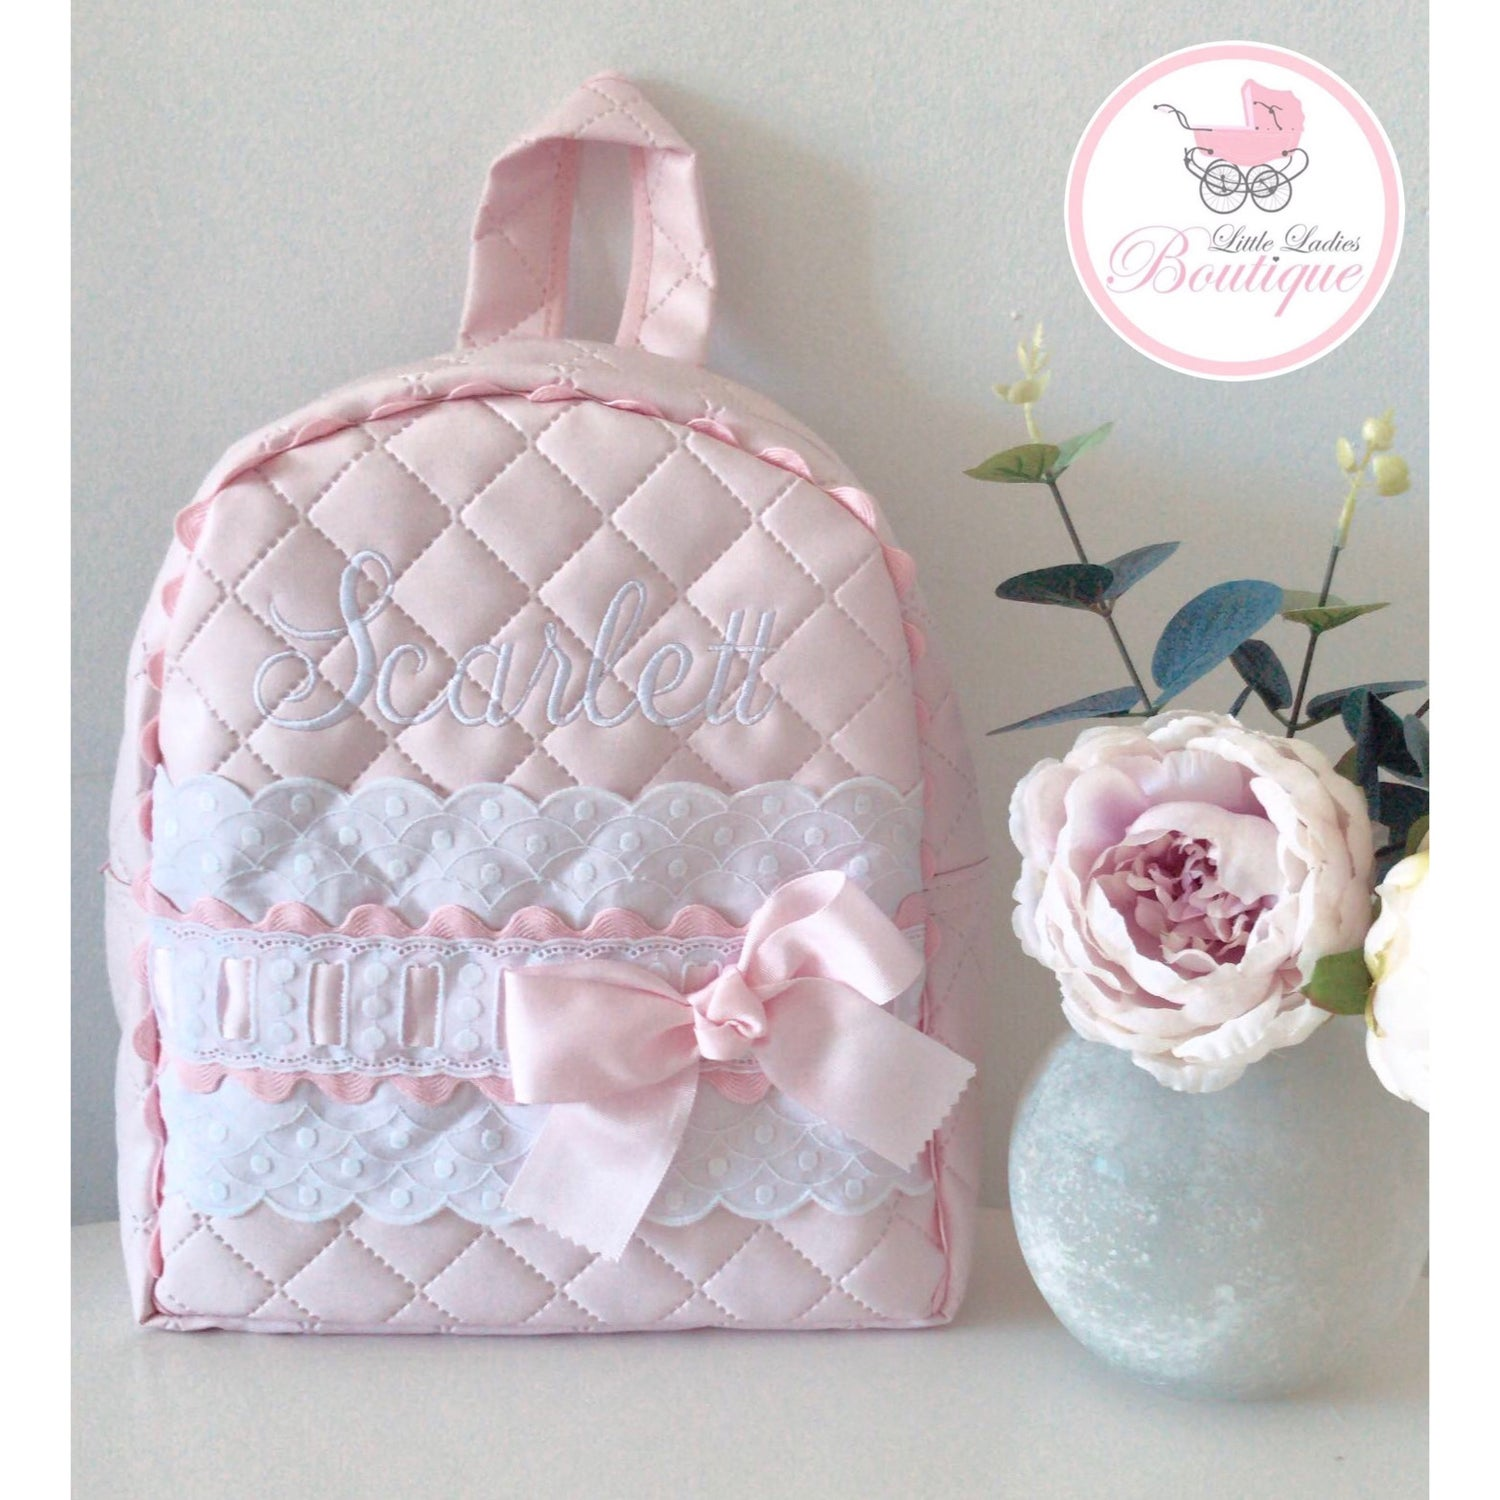 Image of Handmade personalized back packs